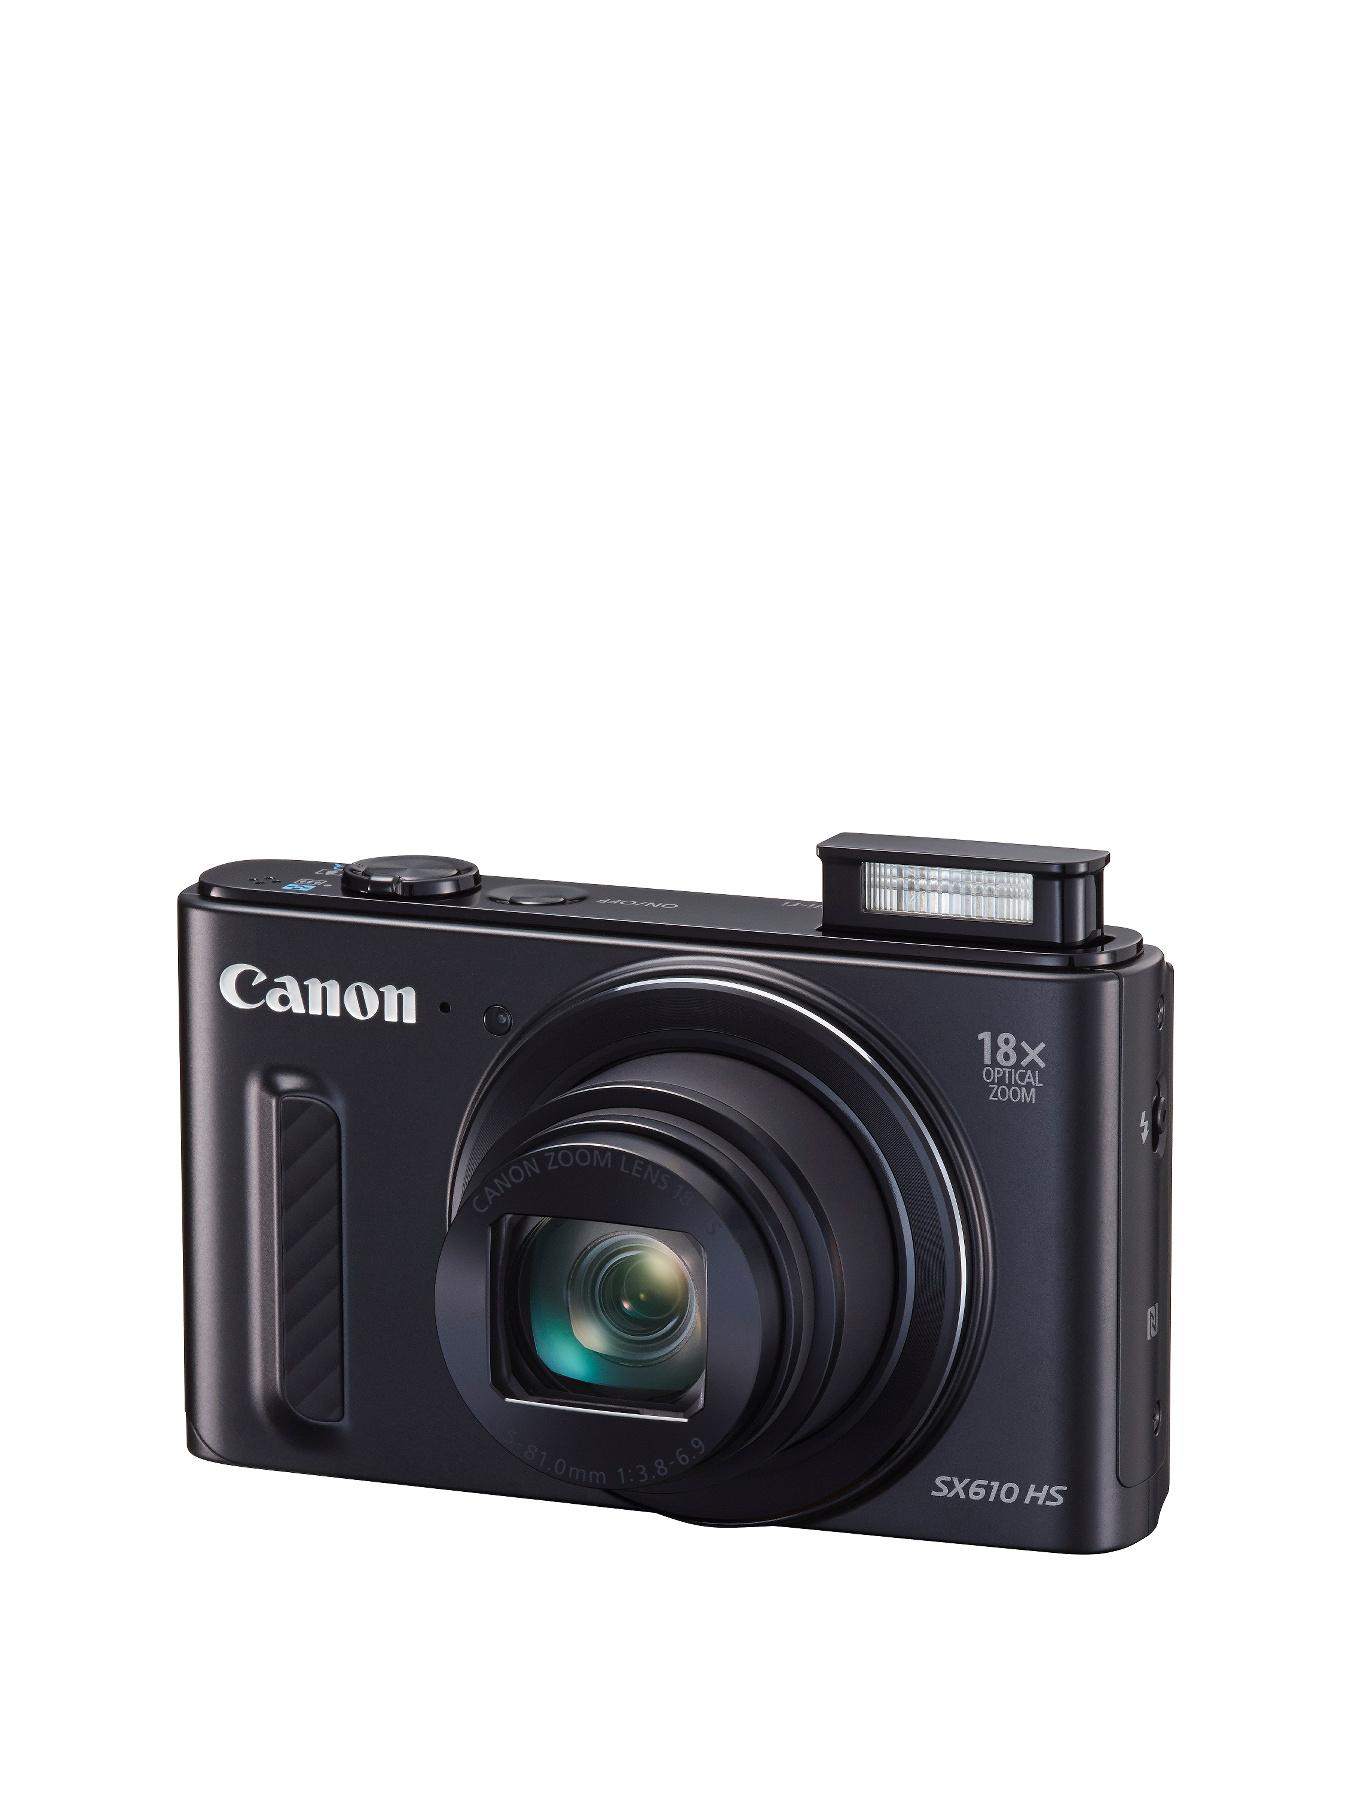 Canon PowerShot SX610 HS 20.2MP 18xZoom 3.0 LCD FHD 25 mm Wide WiFi Camera - Black